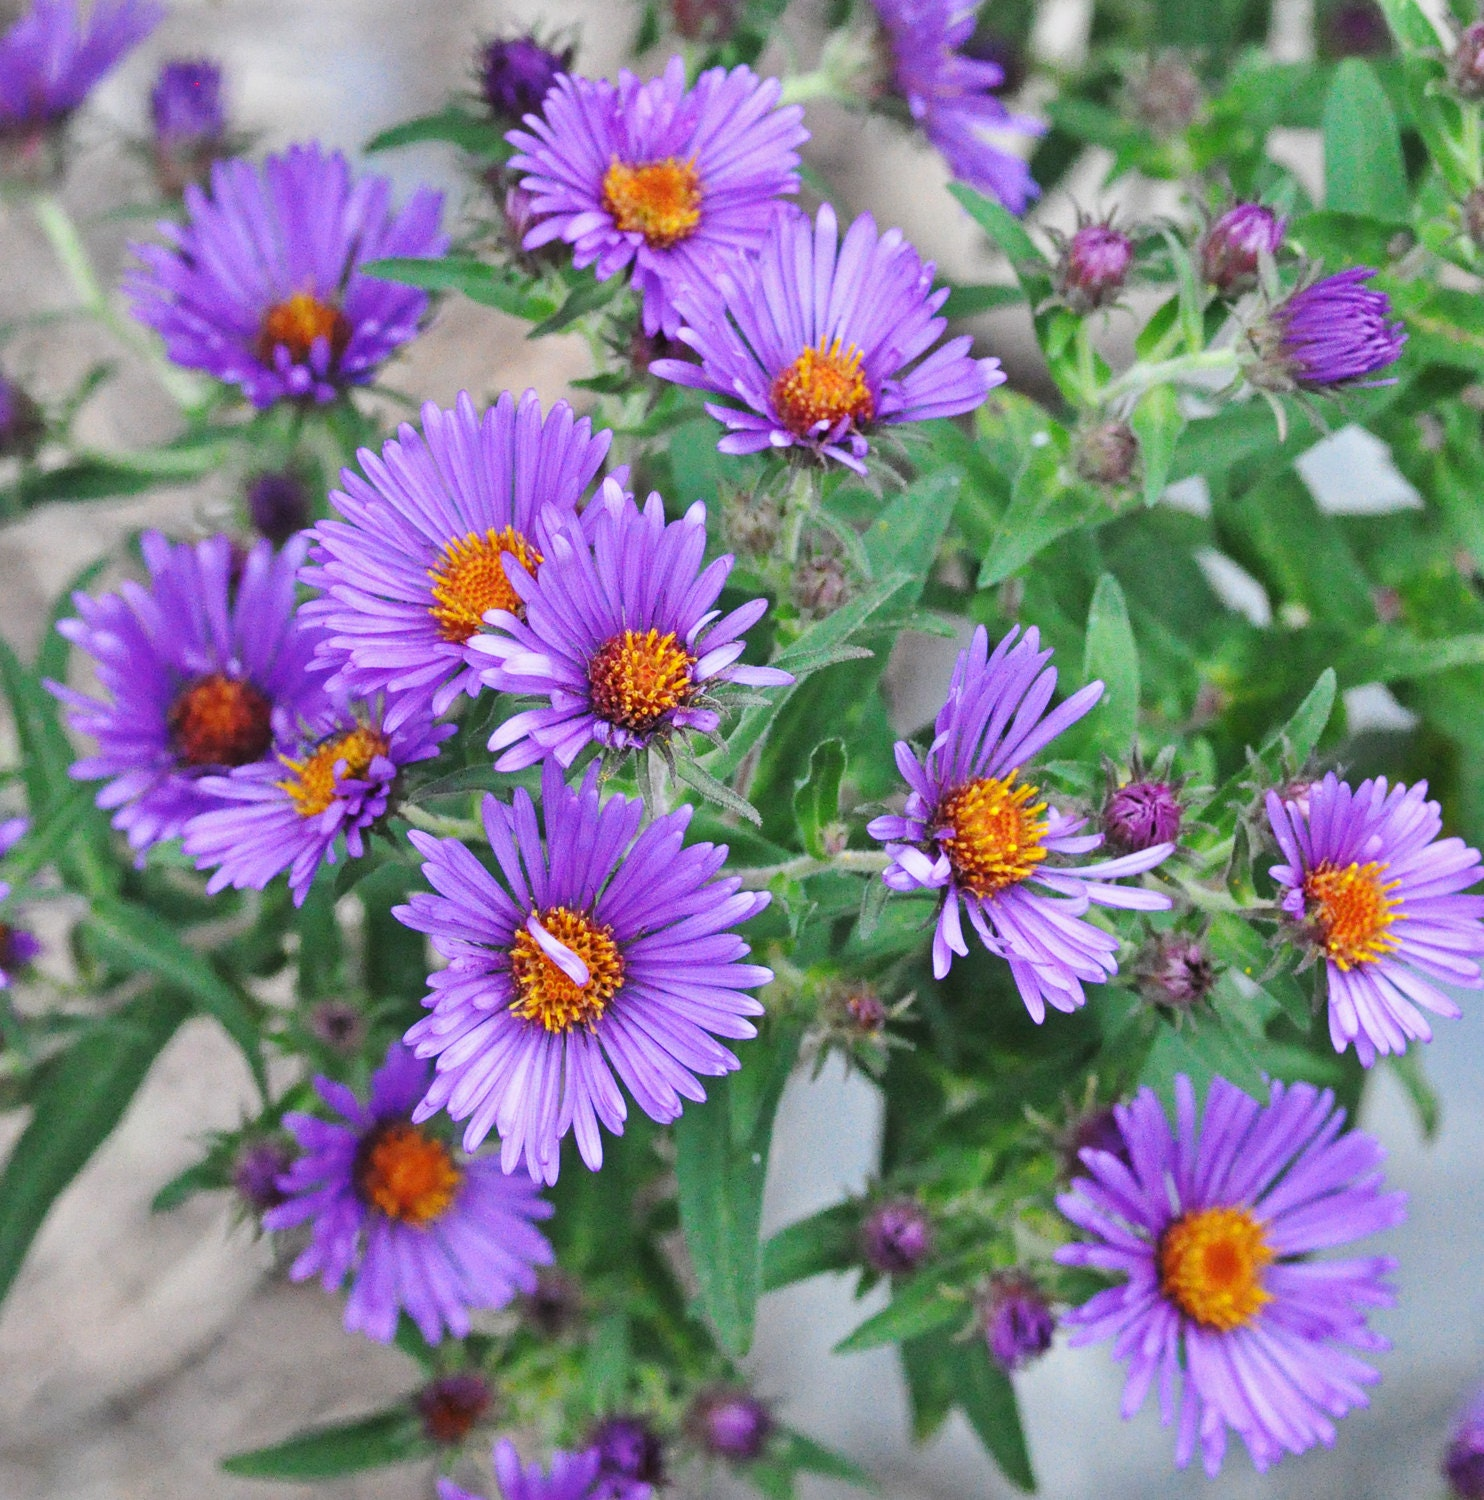 Power of the Flower: My favorite flower: New England Aster